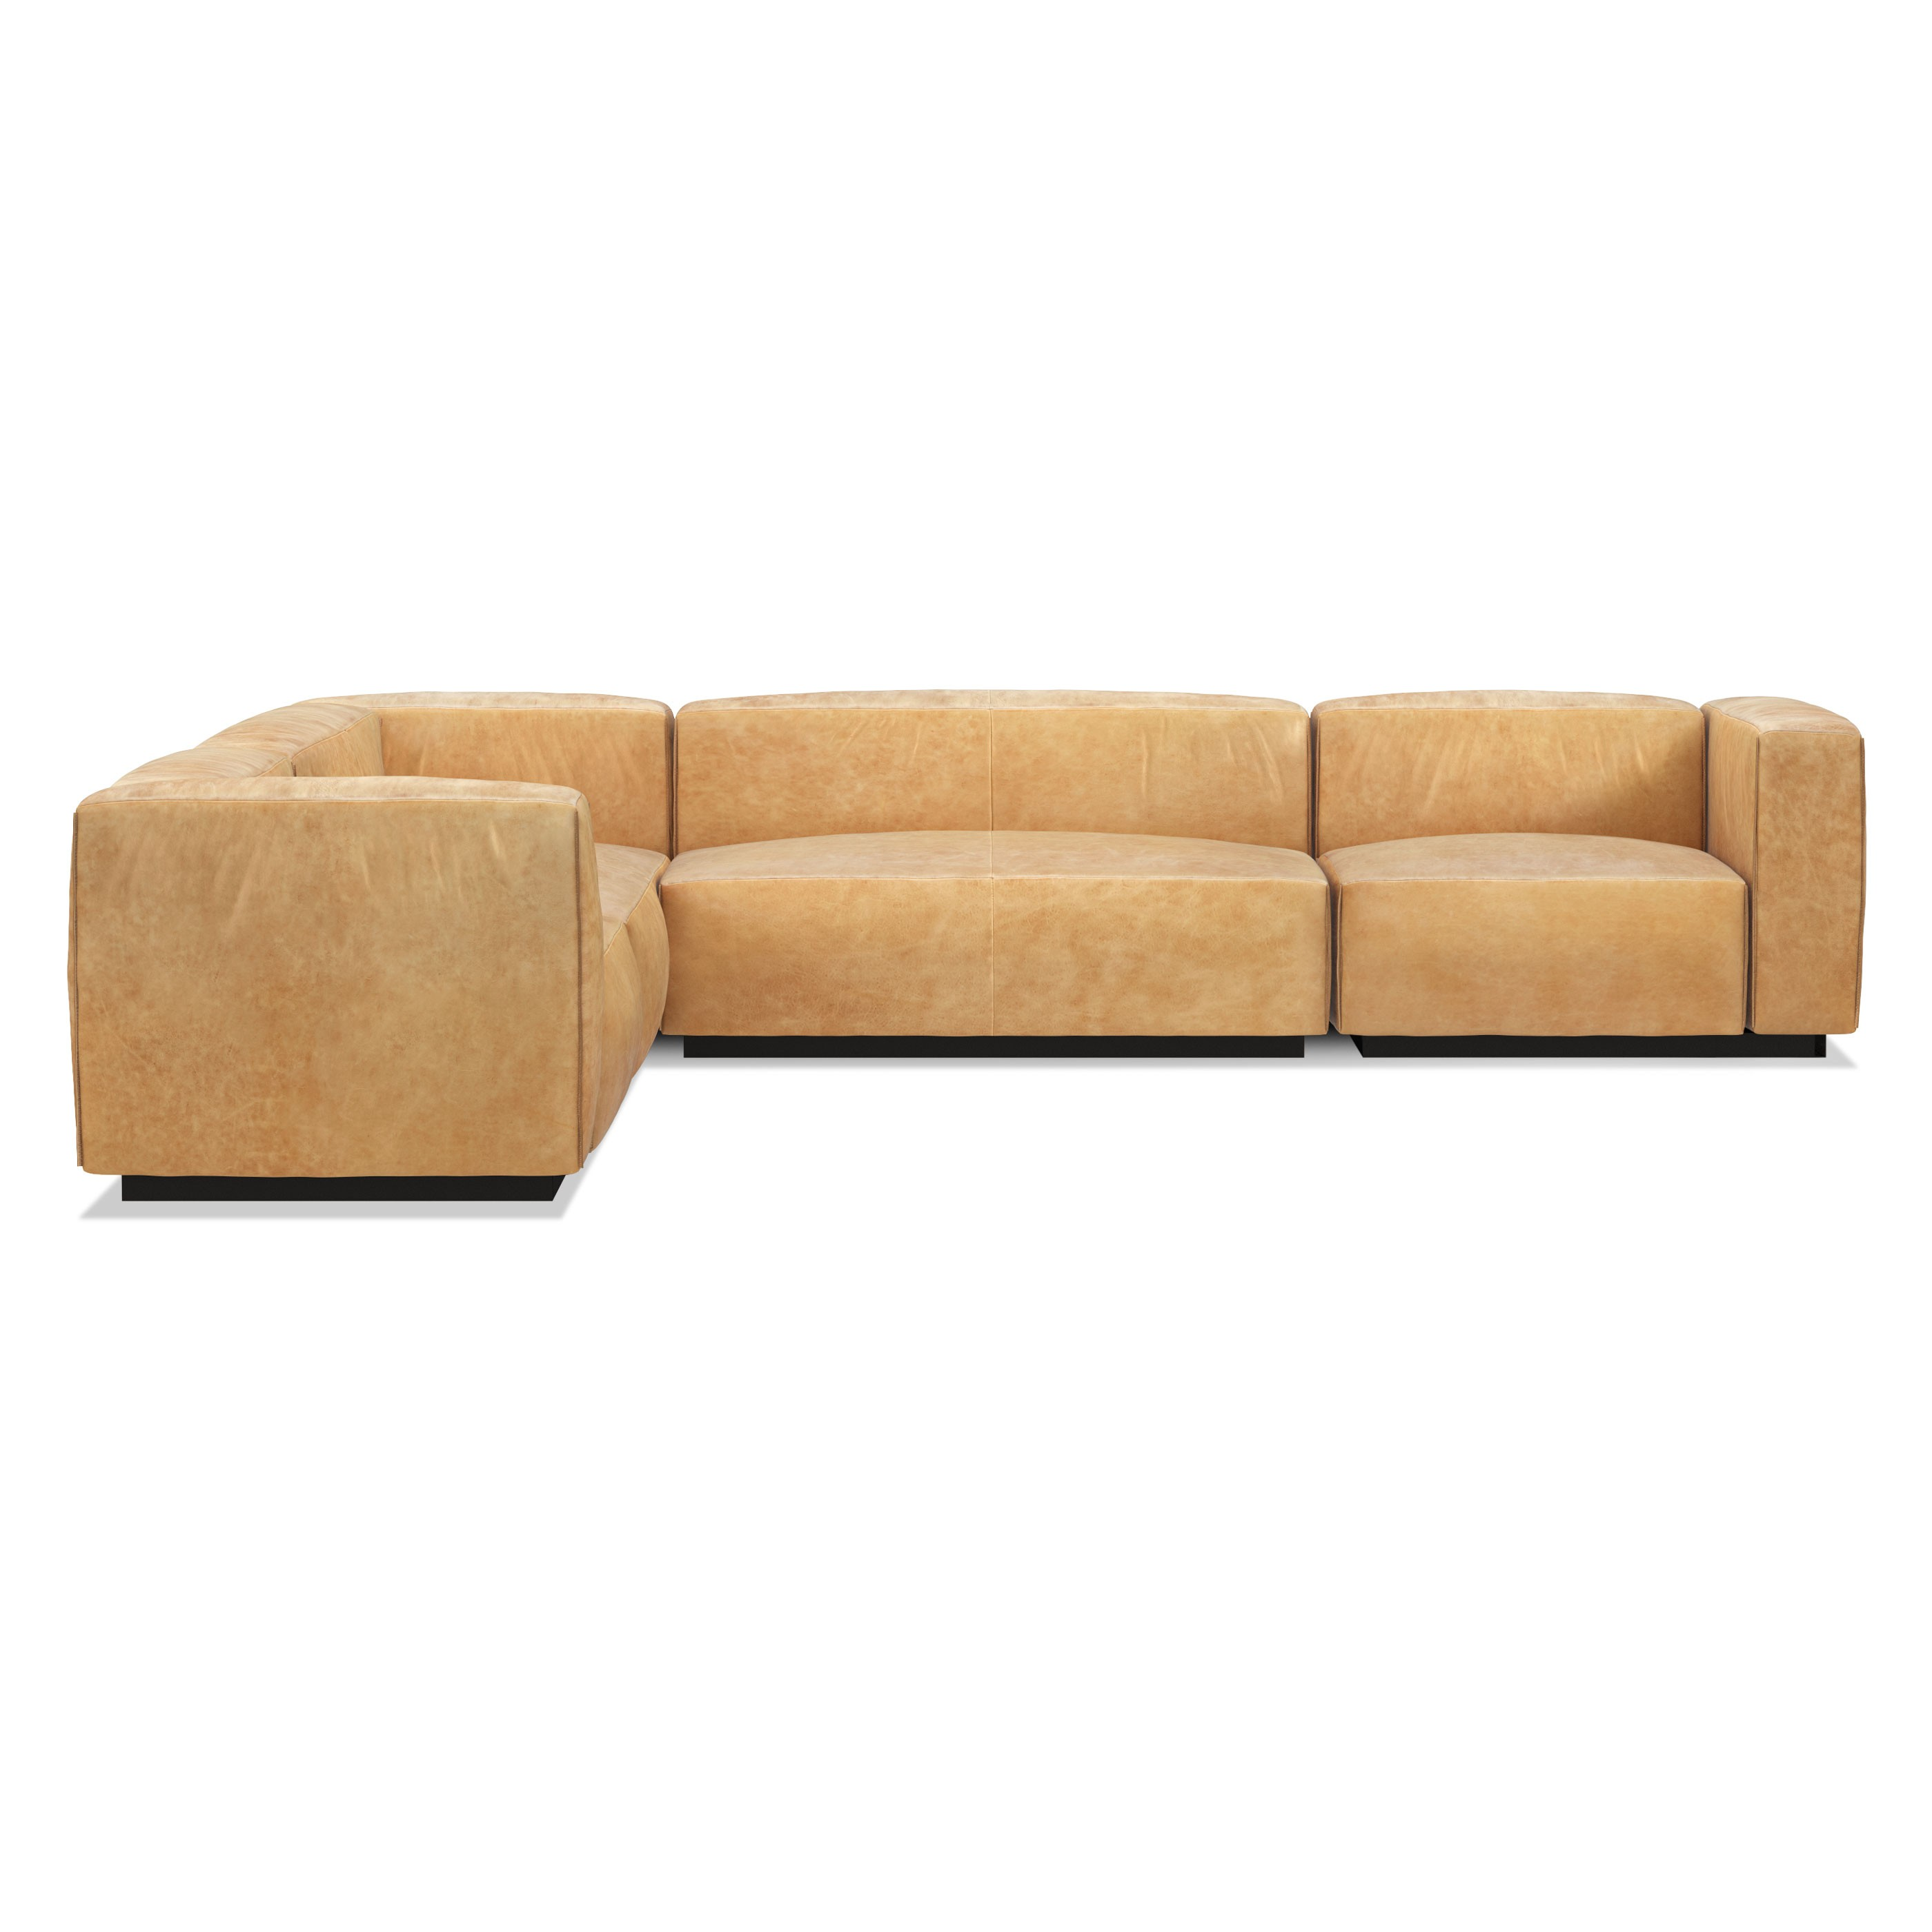 Cleon Large Sectional Sofa Archetypal